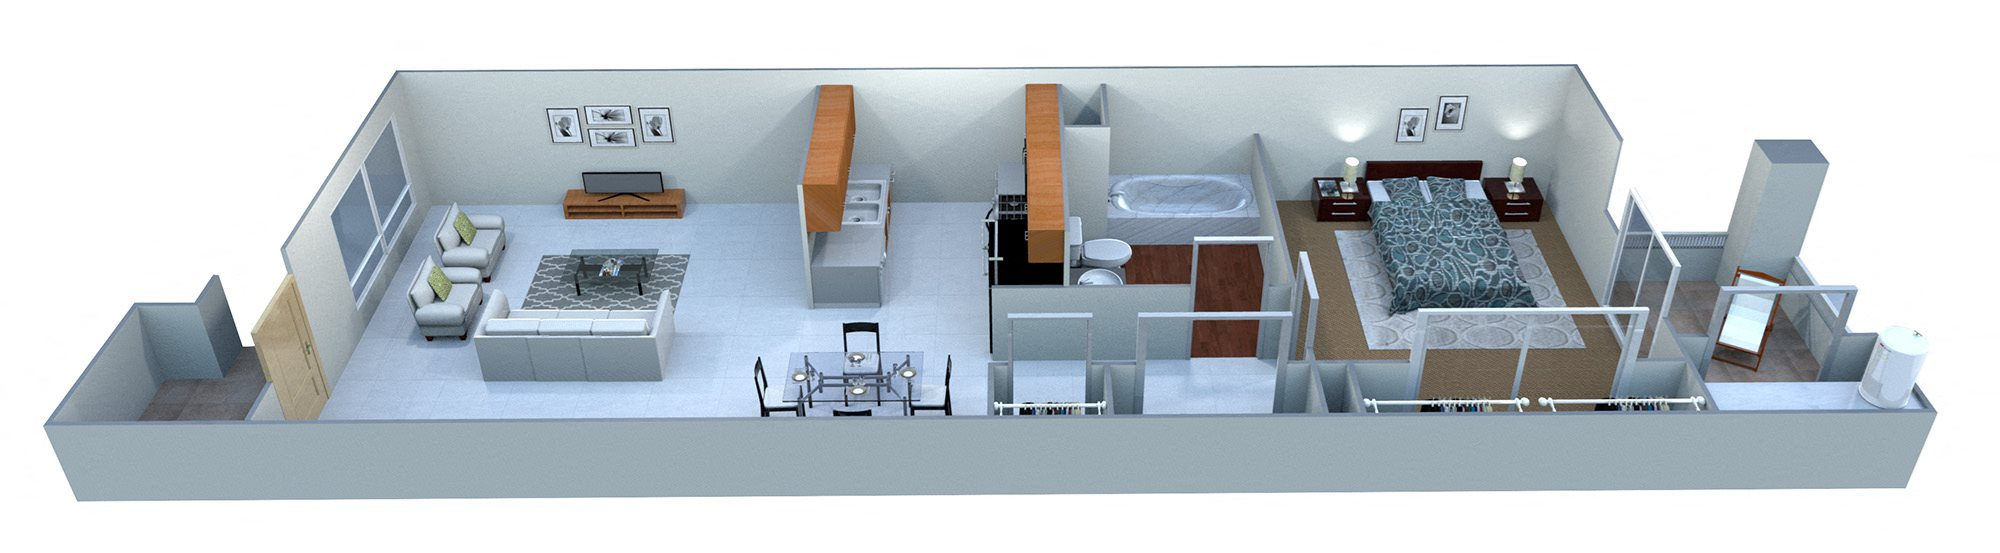 1A One Bedroom Floor Plan 1